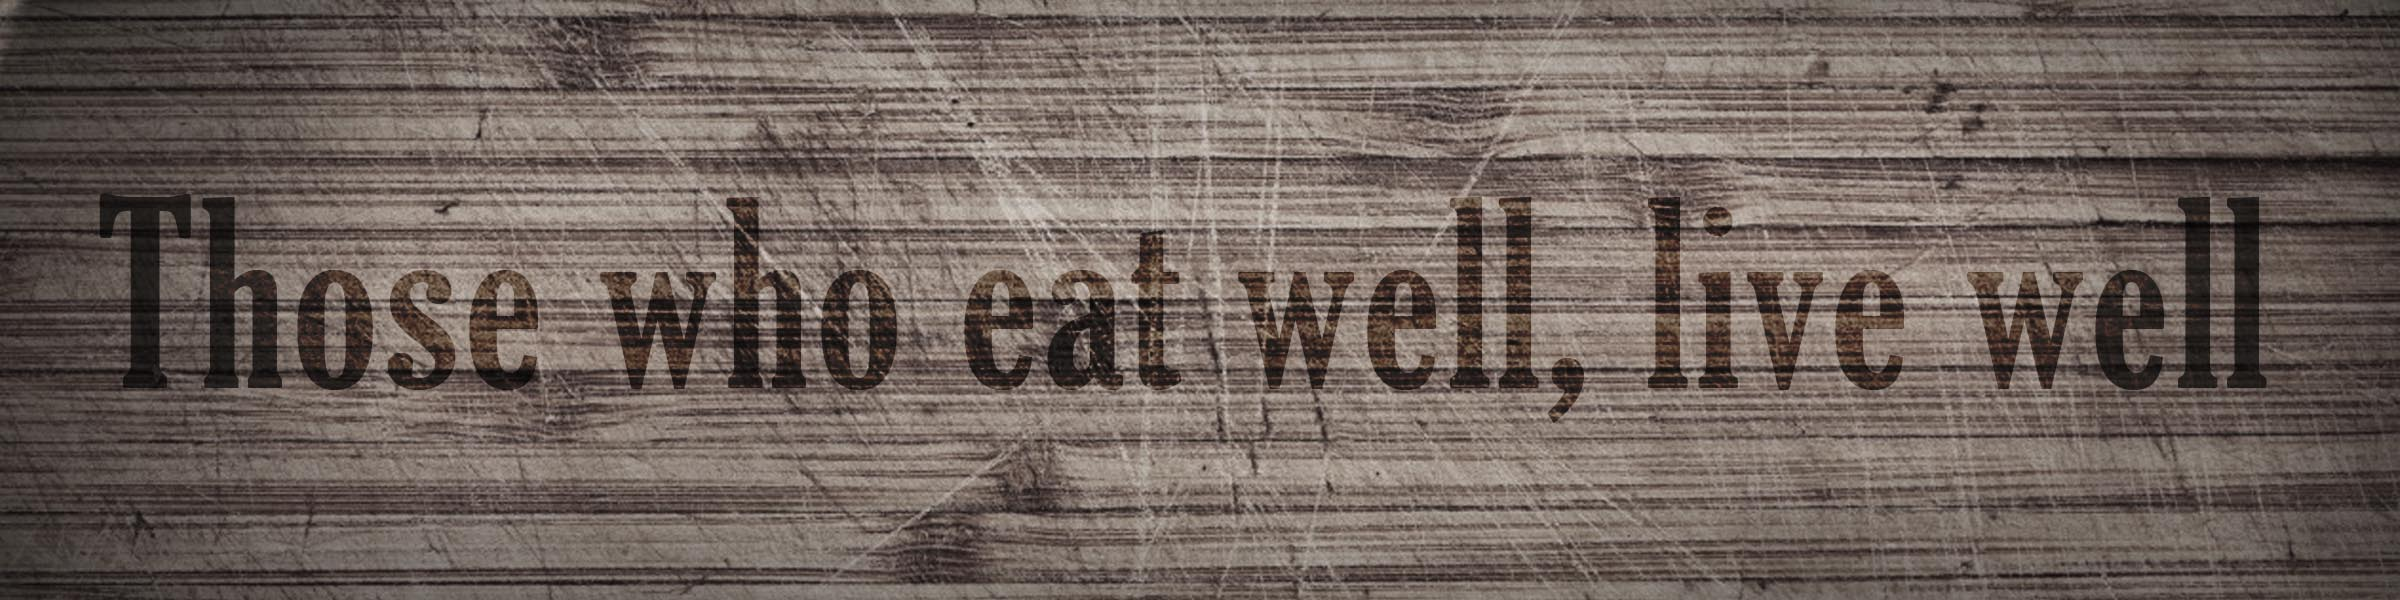 Those who eat well, live well